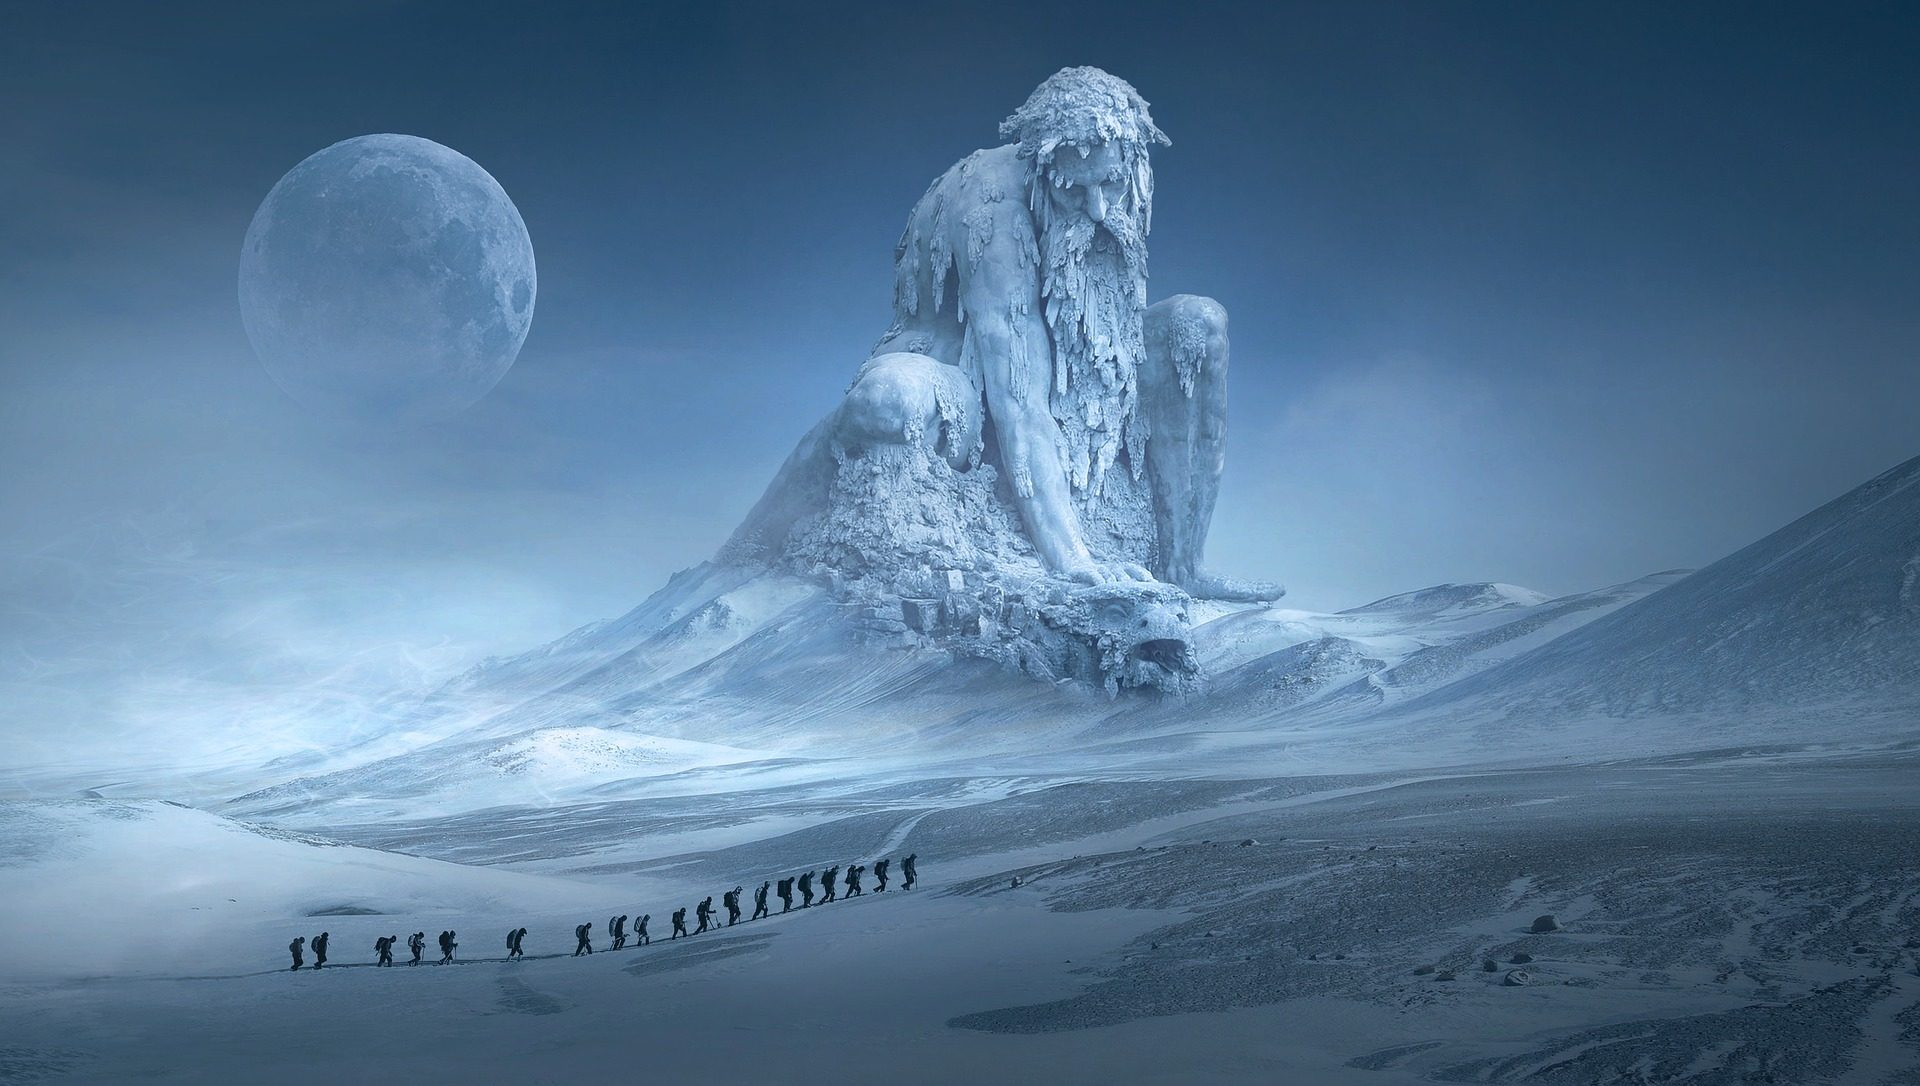 Riese, Eis, Festung, Mond, Expedition - Wallpaper HD - Prof.-falken.com